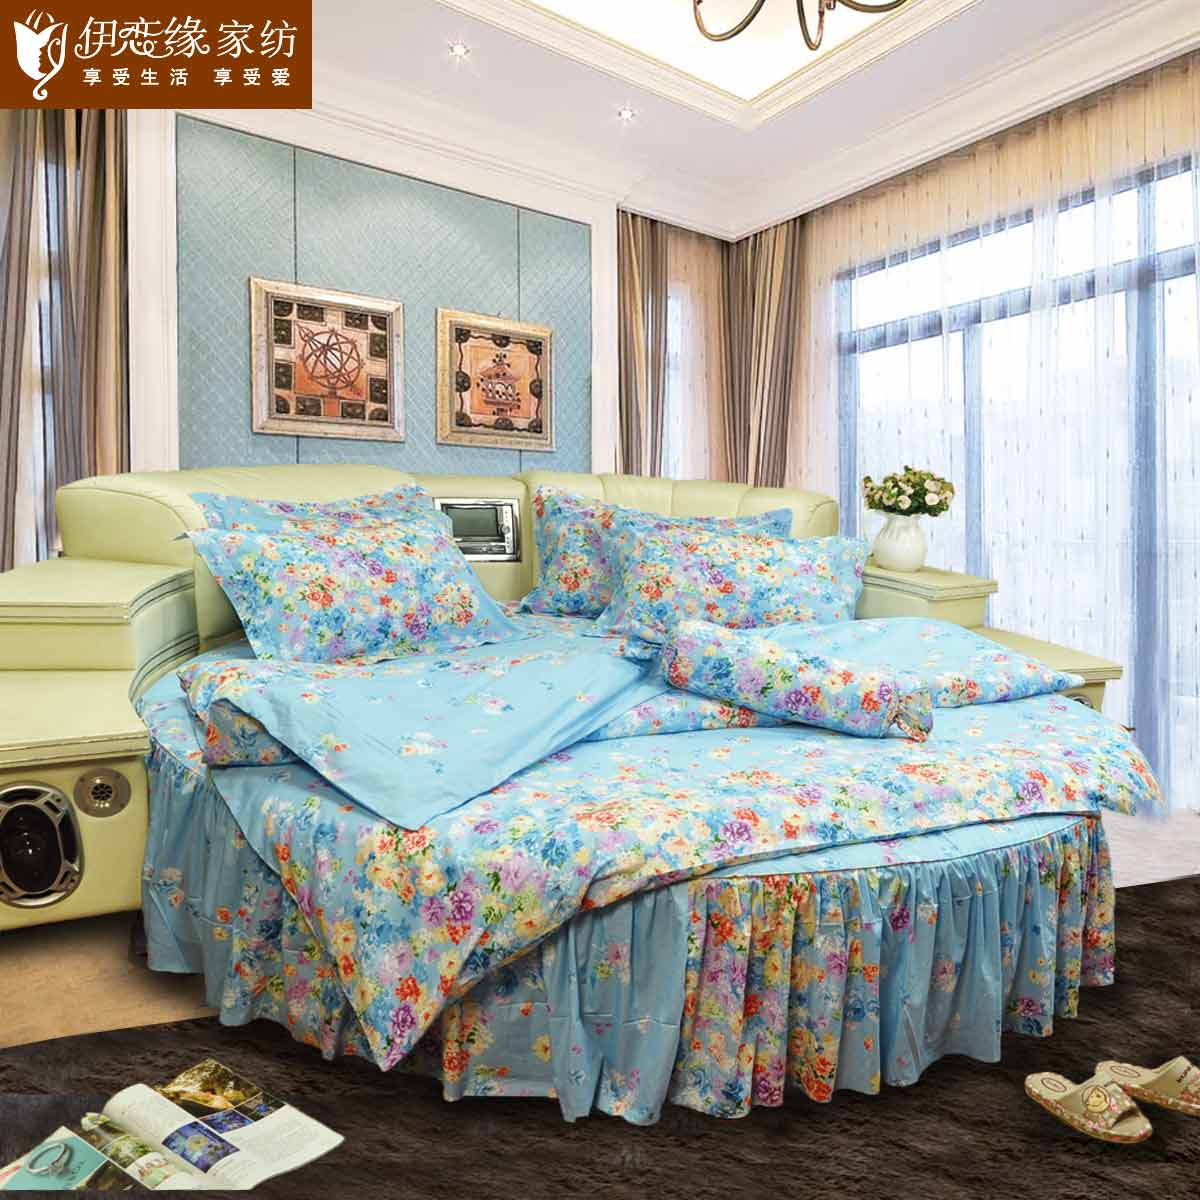 Love iraqi edge cotton bedspread bed skirt round bed family of four korean garden fresh round kit custom flower thousand bones